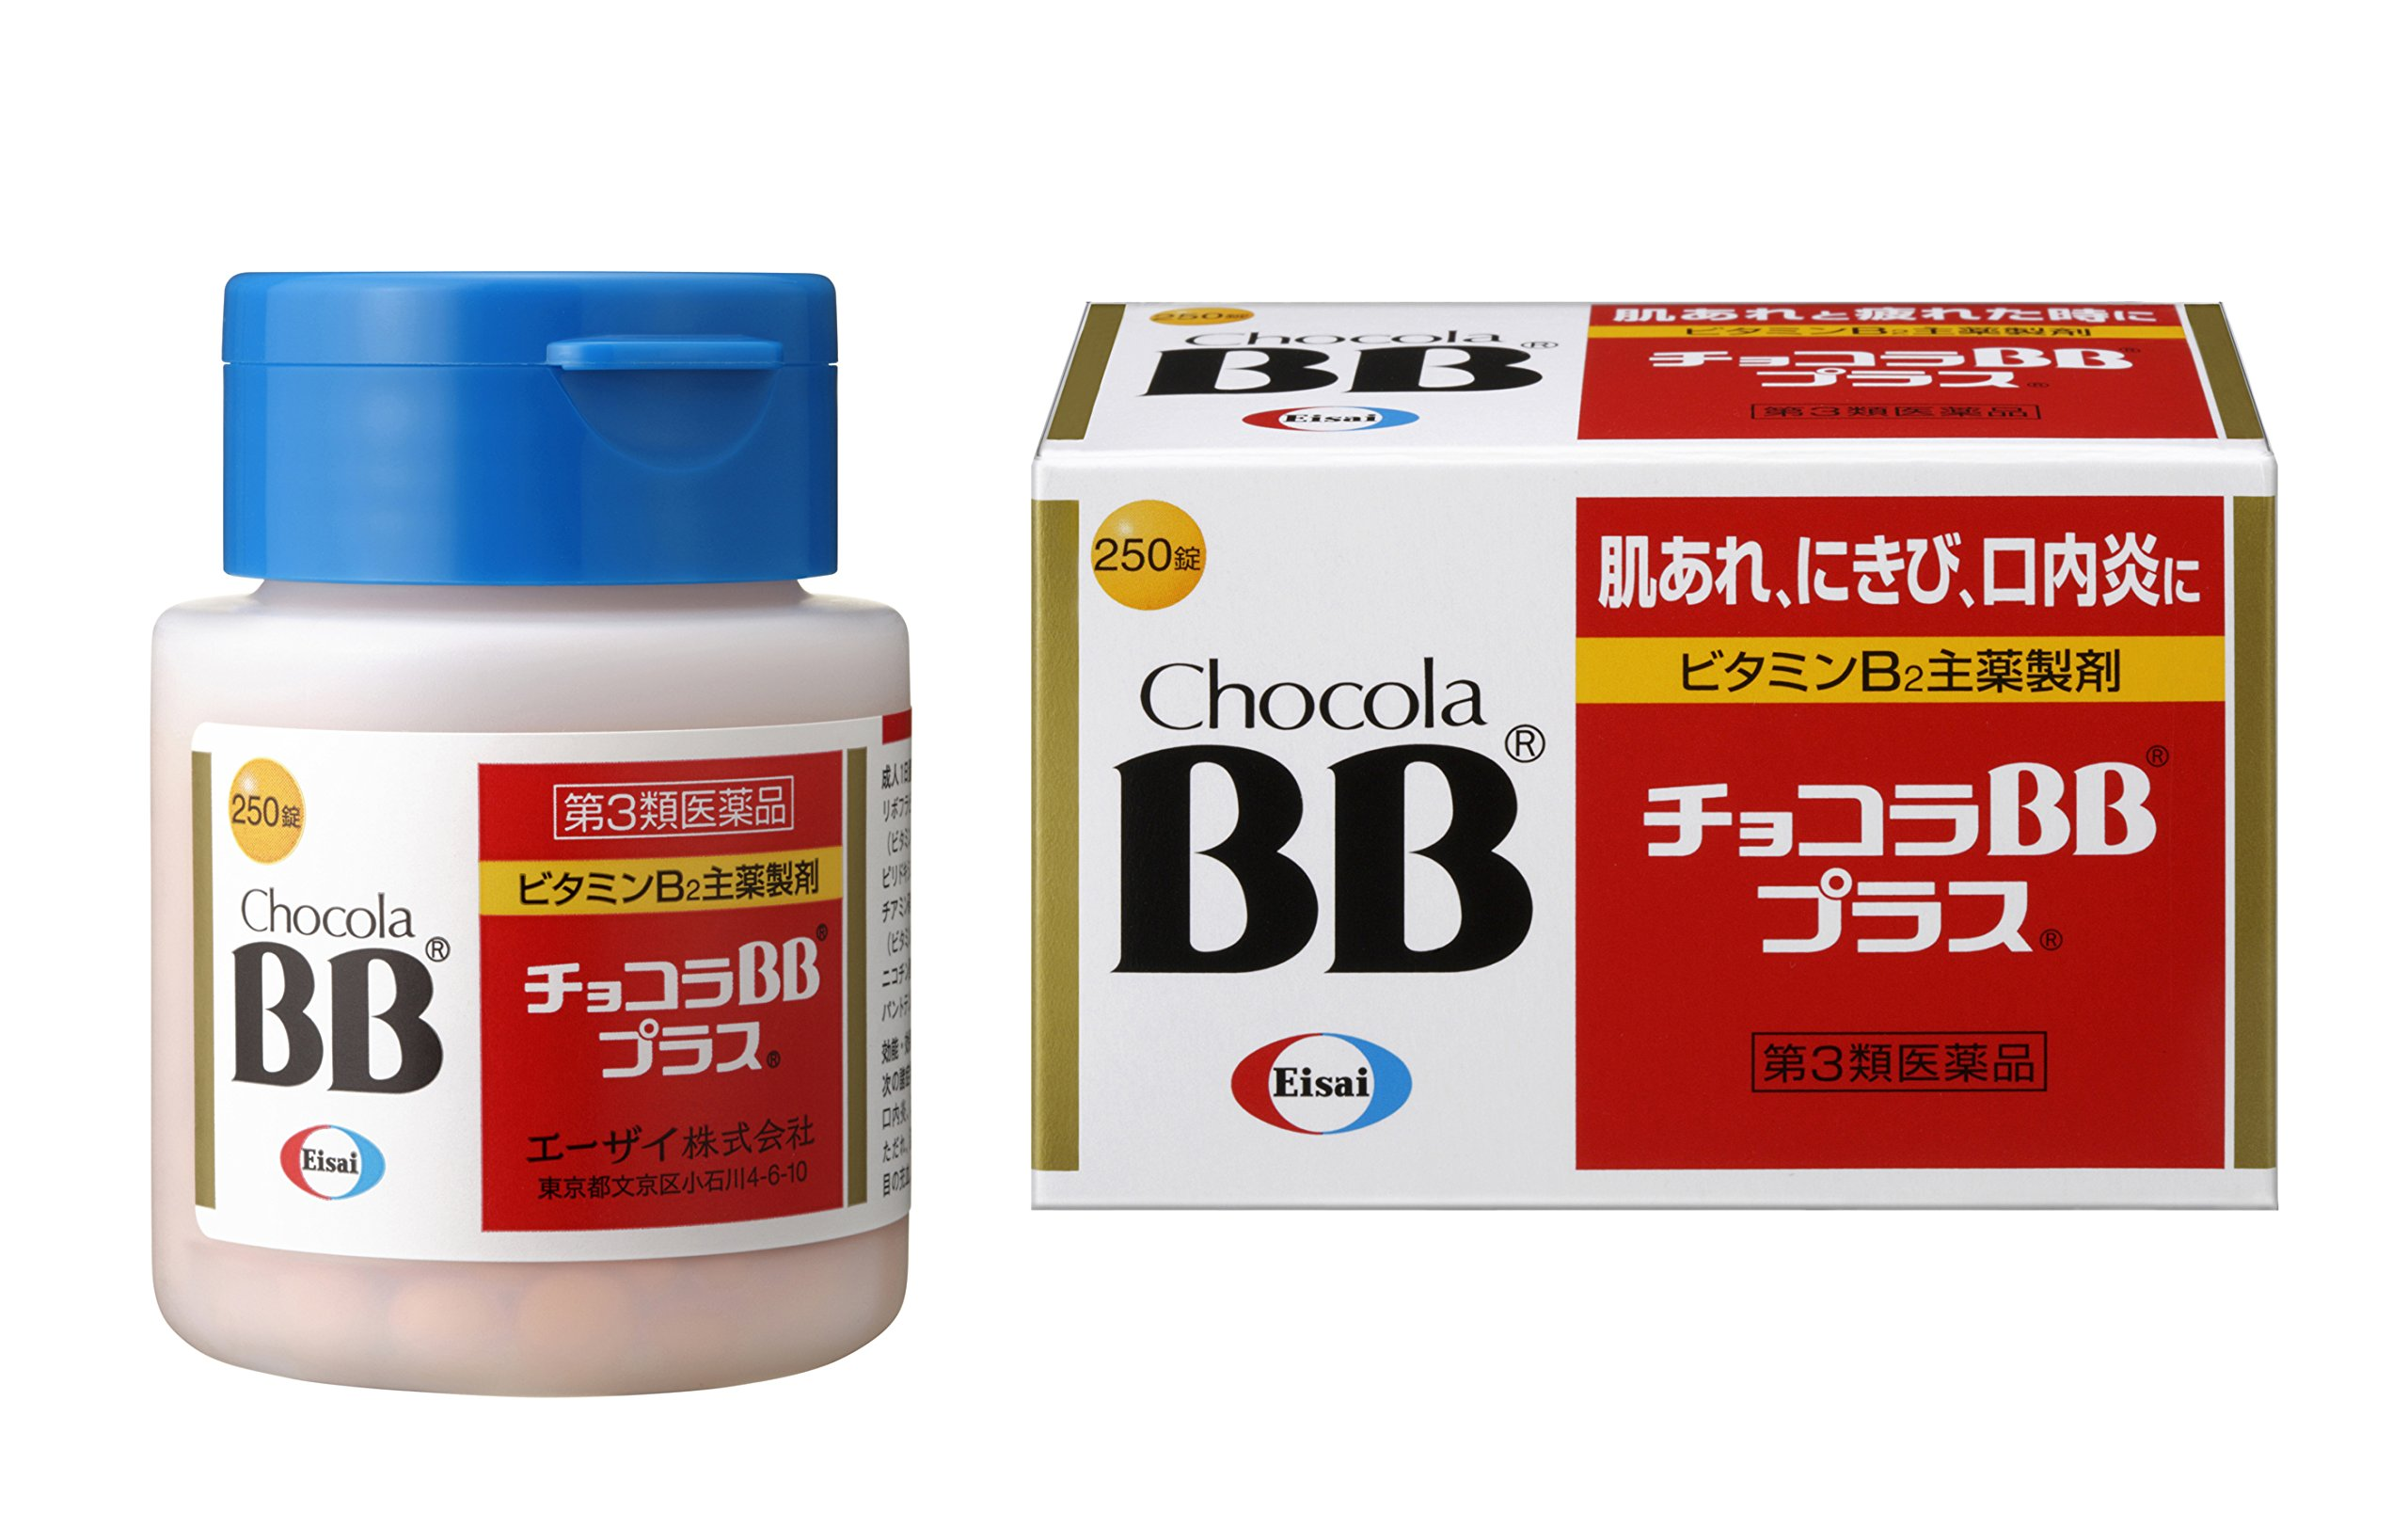 Chocala BB plus Vitamin B2 pimples canker sore 250 tablets by Chocolate